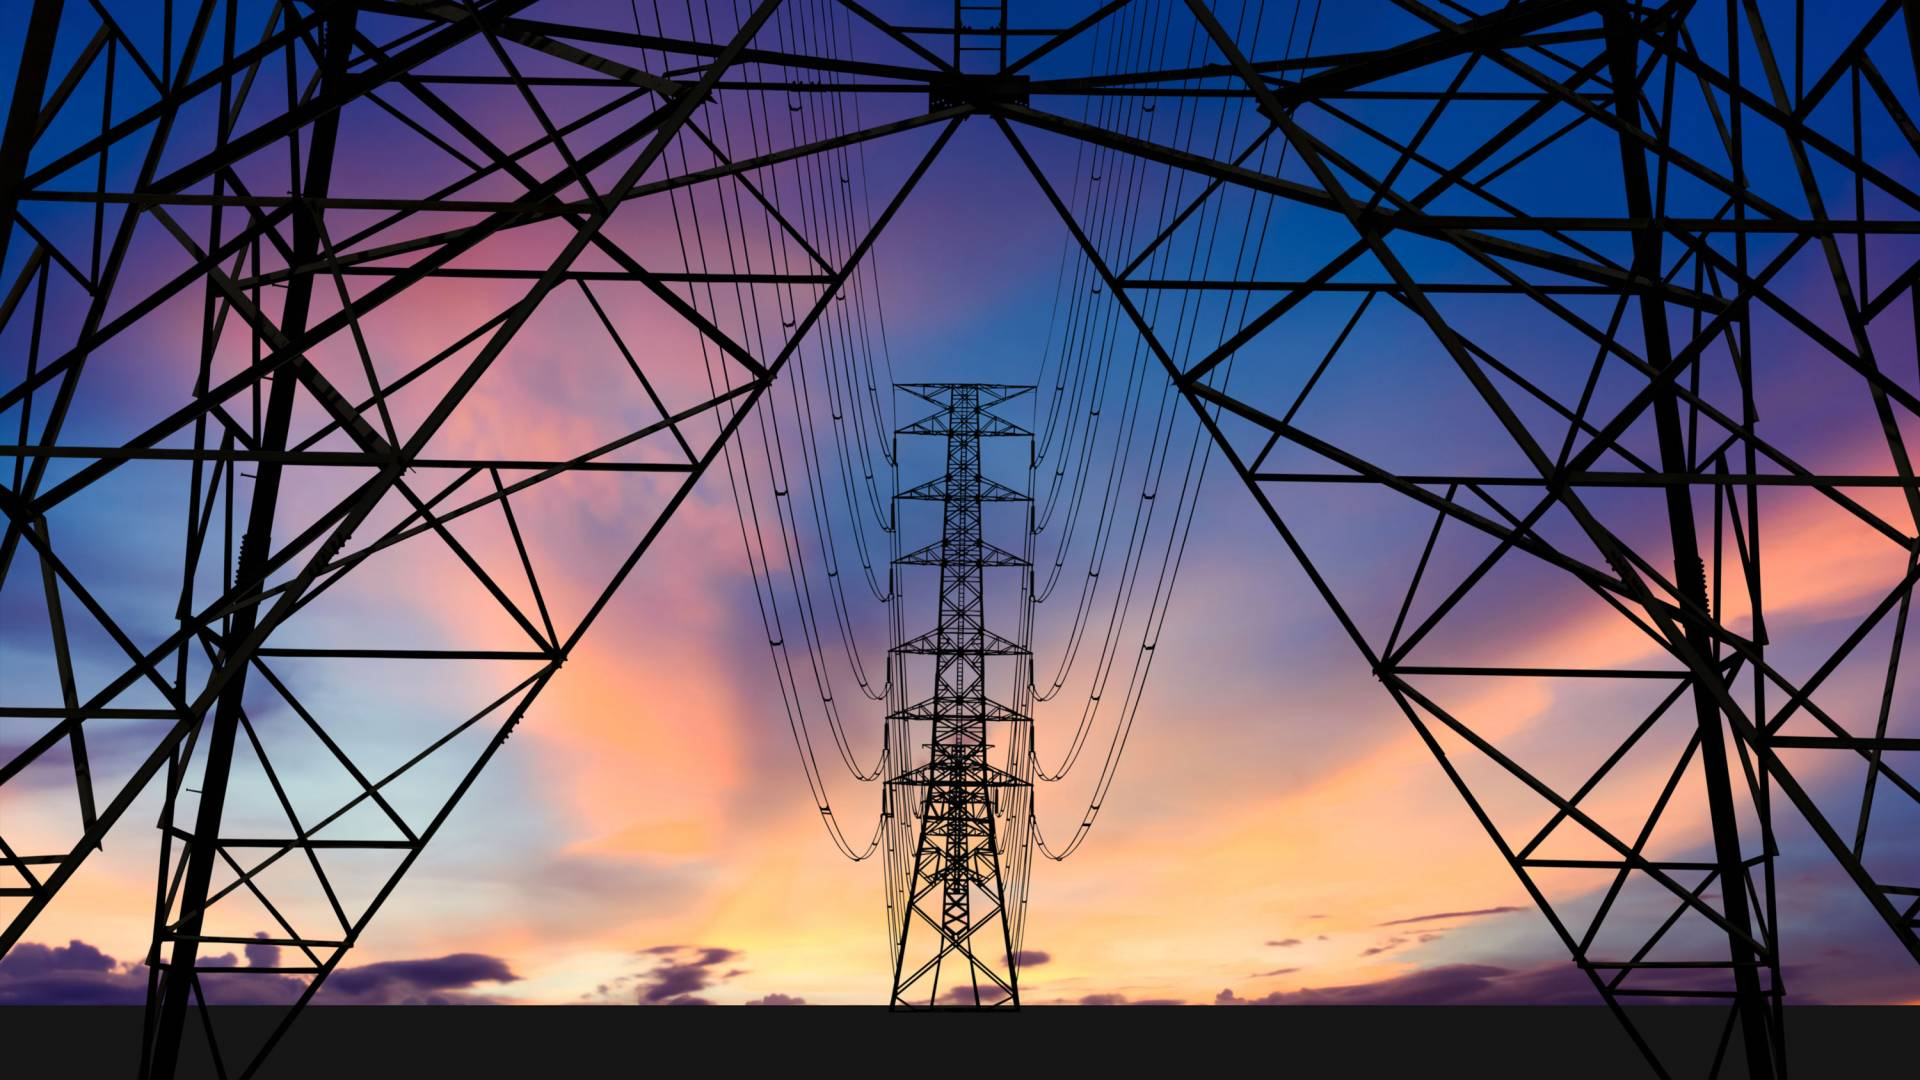 India: The Electricity (Amendment) Bill, 2020 – Key Highlights